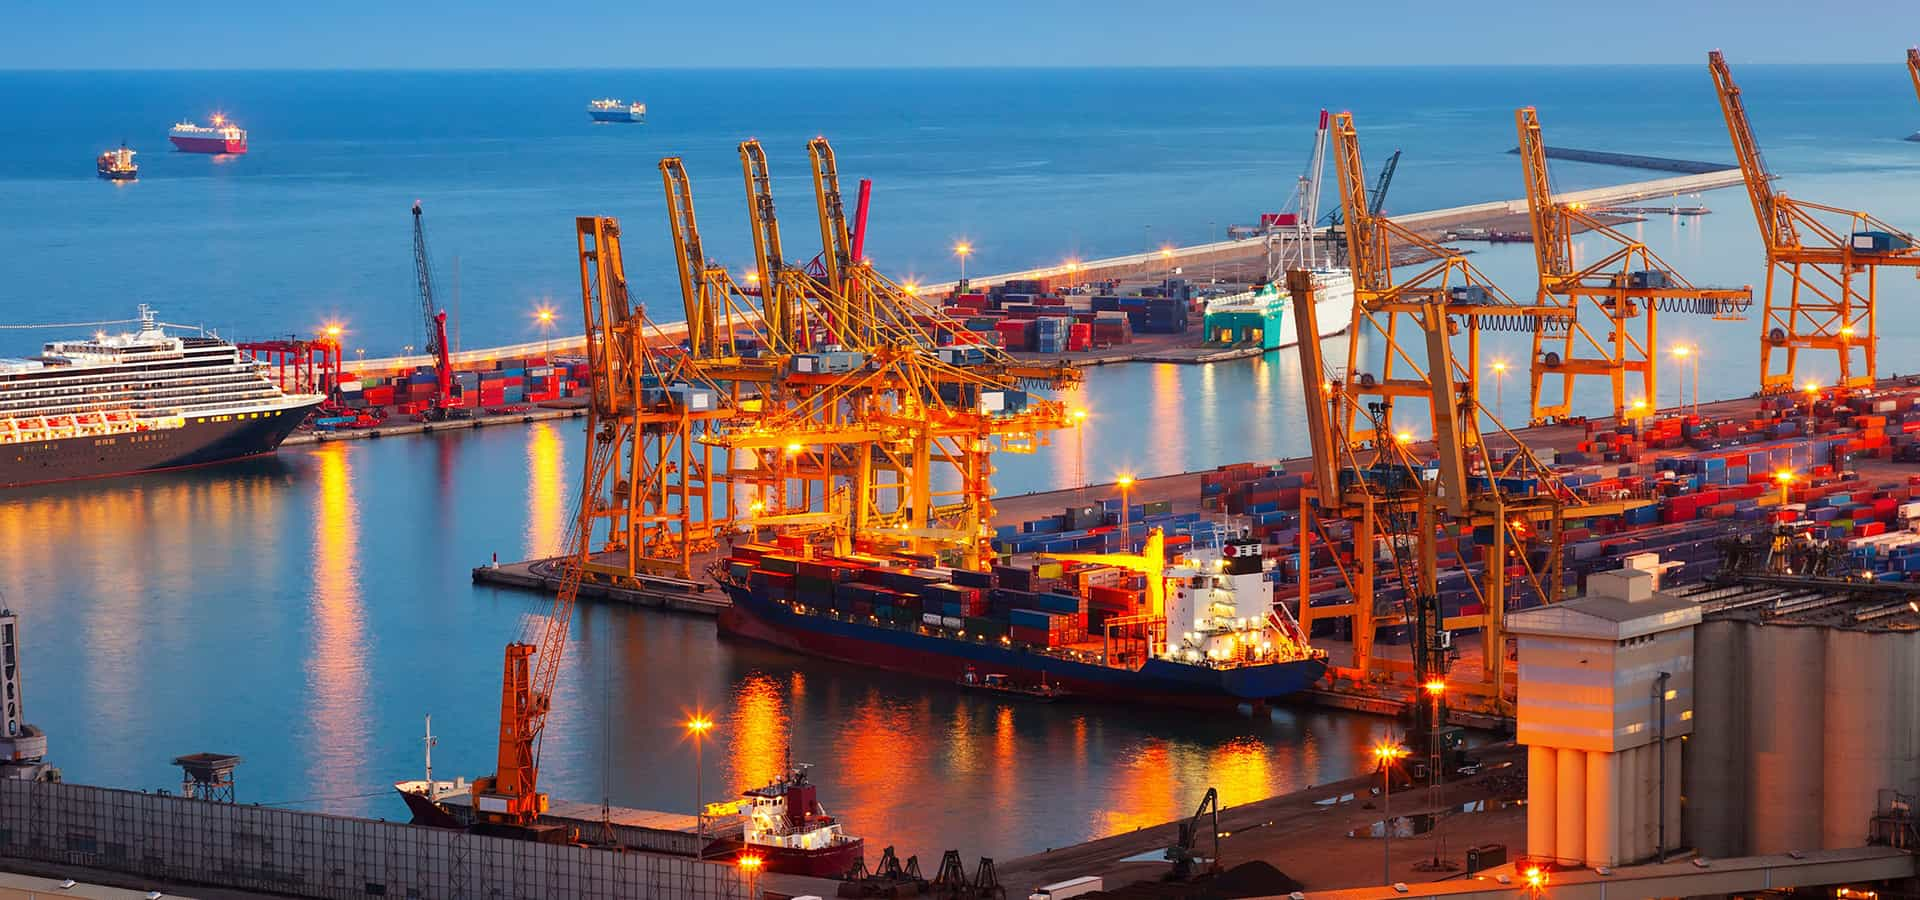 Container ships in a port